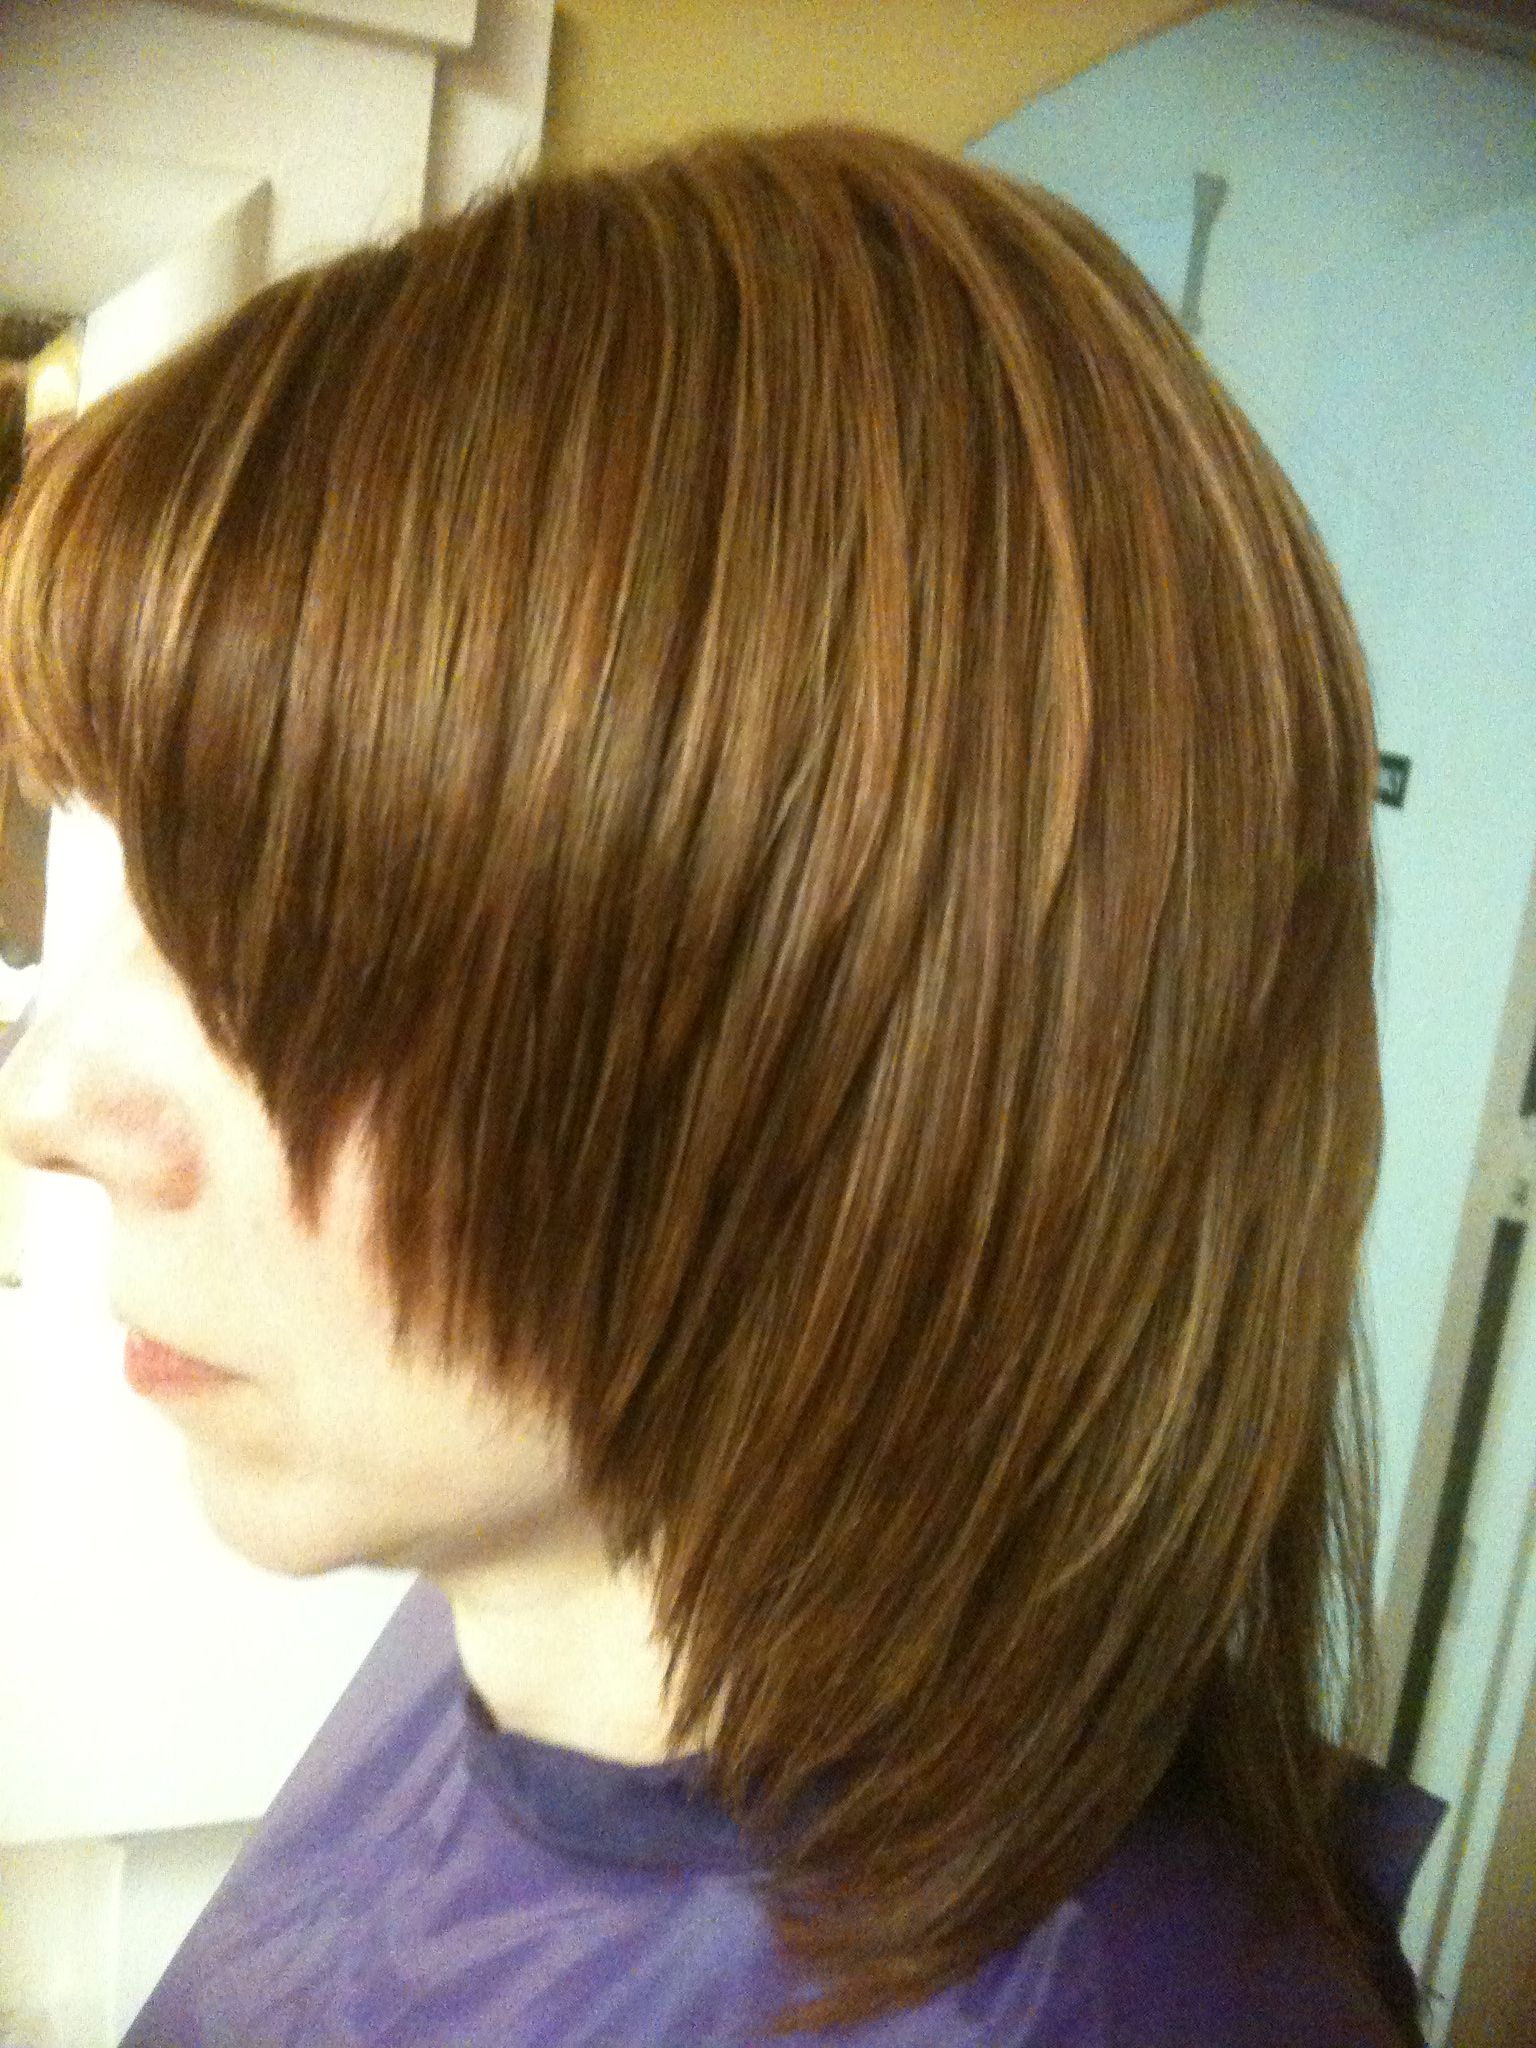 Coiffure Cheveux Mi Long Meche Blonde Auburn Hair With Butter Blonde Highlights By Jo